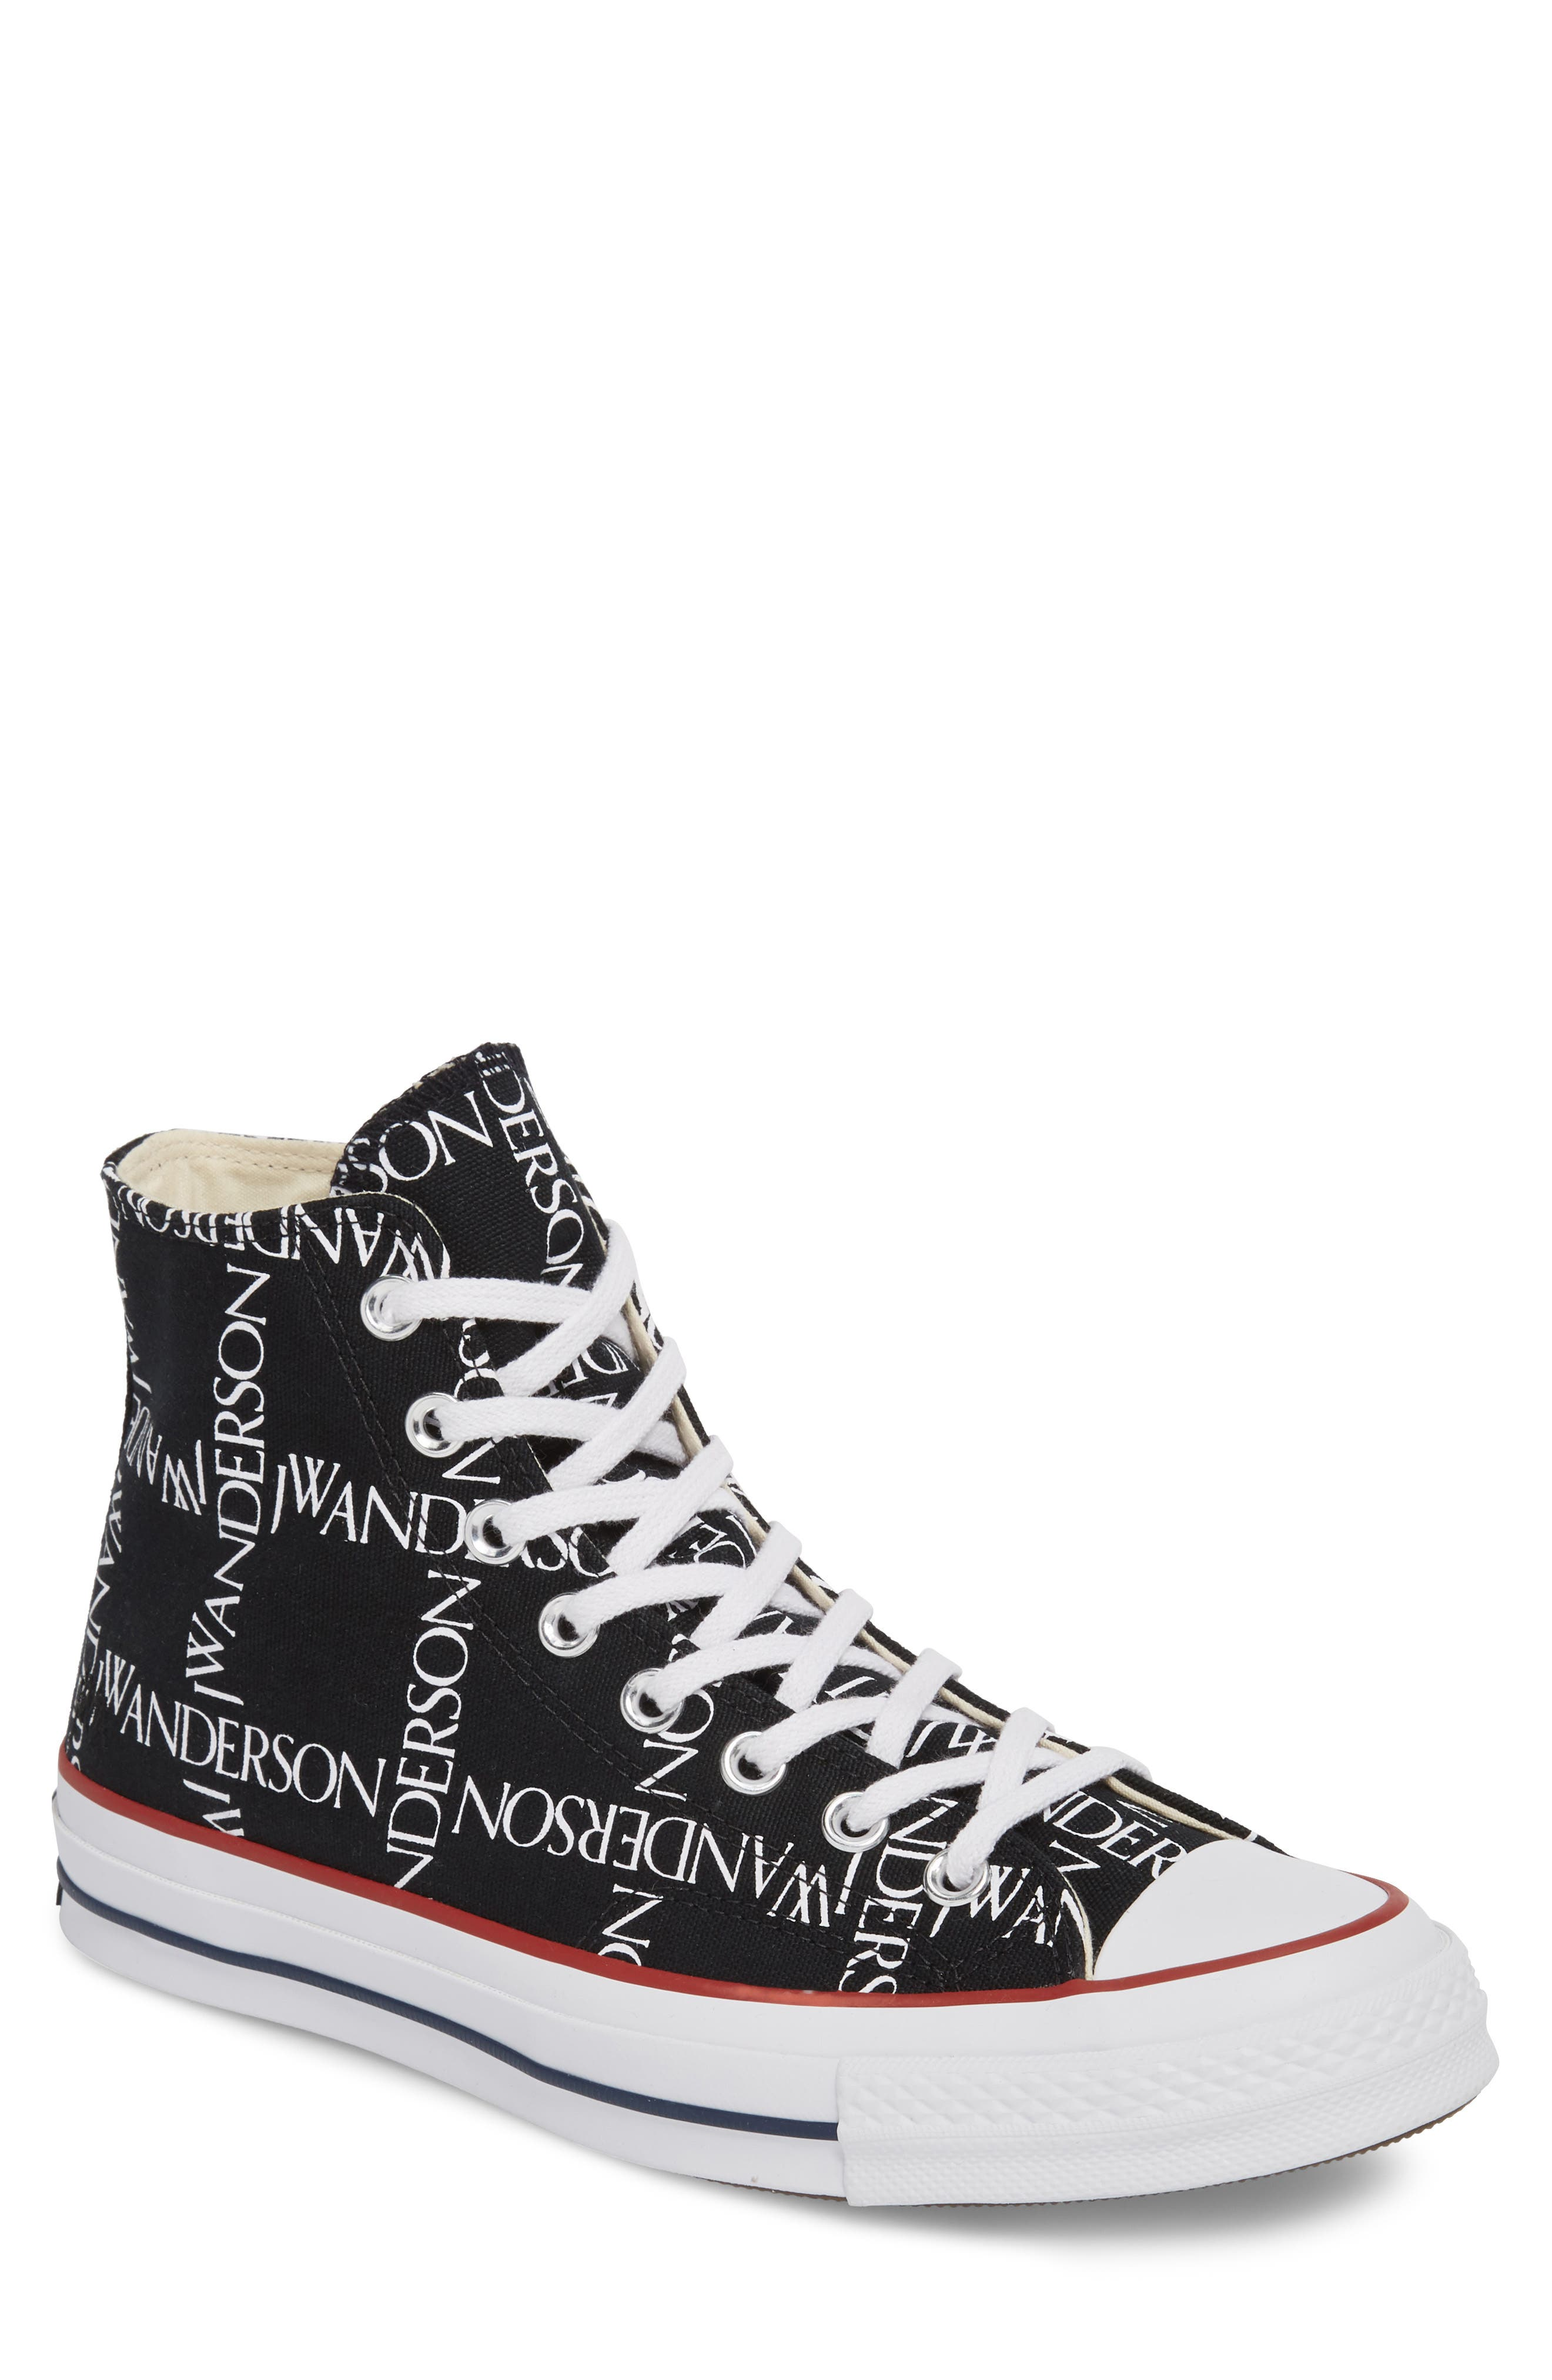 x JW Anderson Chuck Taylor<sup>®</sup> All Star<sup>®</sup> 70 Grid Sneaker,                             Main thumbnail 1, color,                             BLACK CANVAS